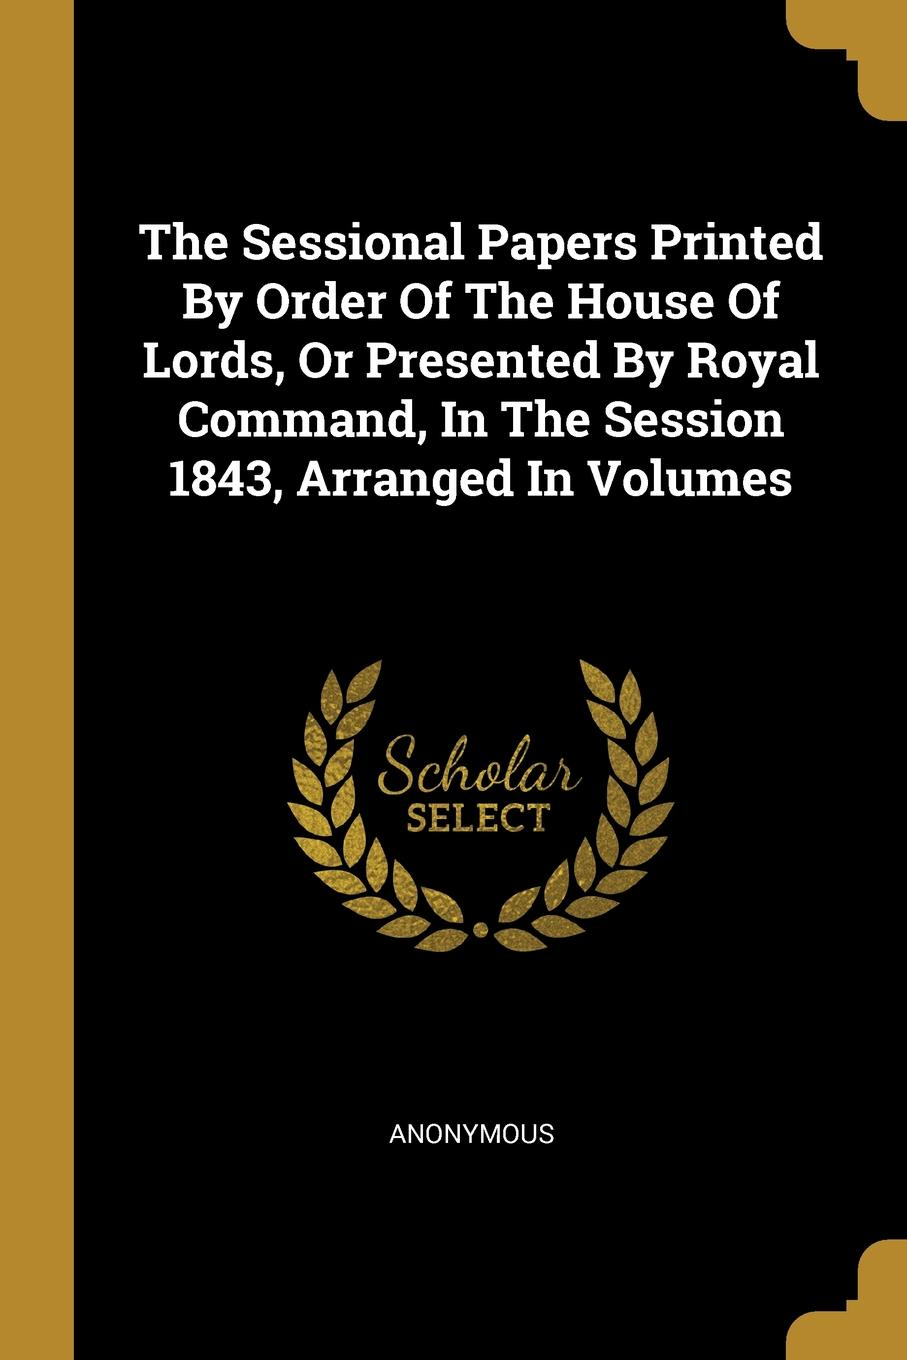 The Sessional Papers Printed By Order Of The House Of Lords, Or Presented By Royal Command, In The Session 1843, Arranged In Volumes